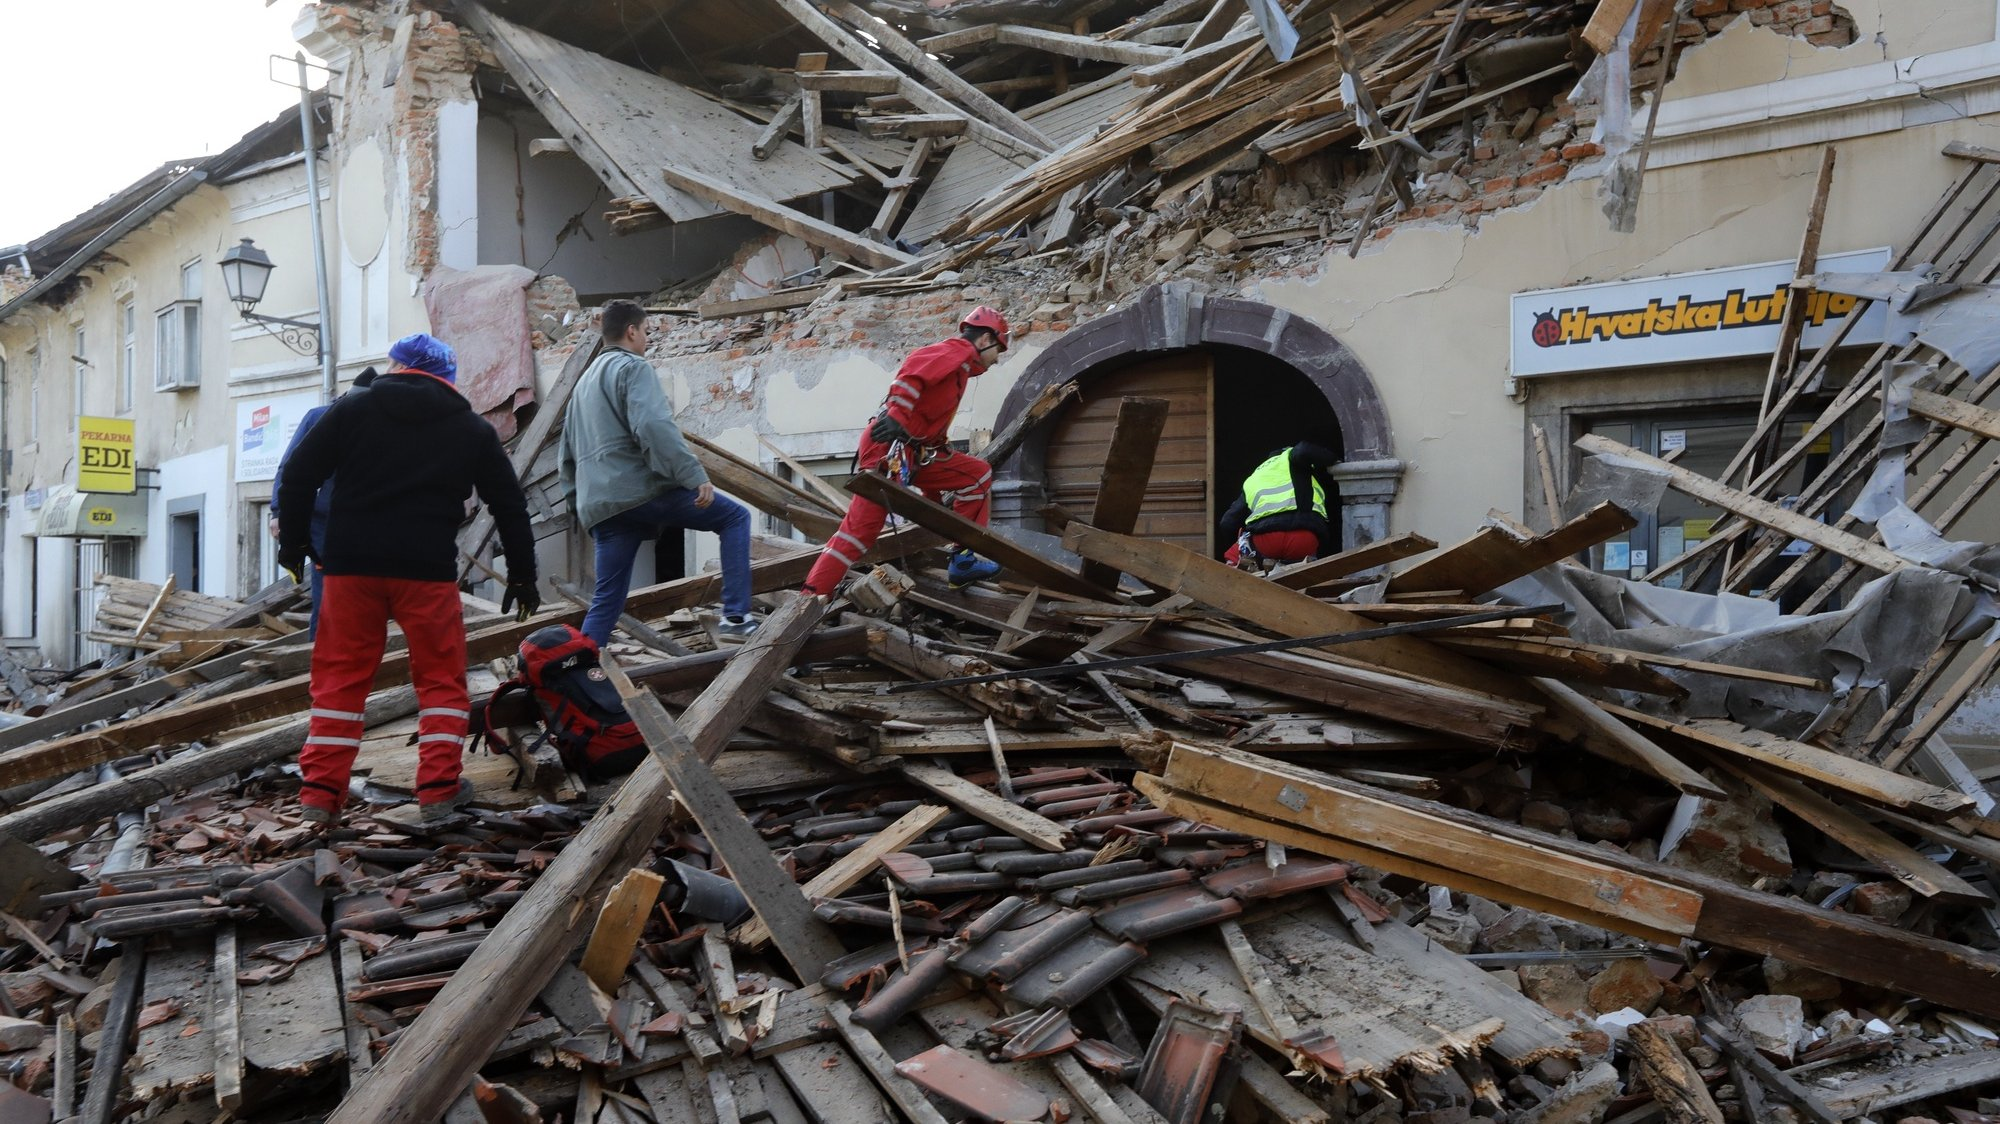 epaselect epa08909722 Workers clear a building damaged in an earthquake in Petrinja, Croatia, 29 December 2020. A 6.4 magnitude earthquake struck around 3km west south west of the town with reports of many injuries and at least one death.  EPA/ANTONIO BAT